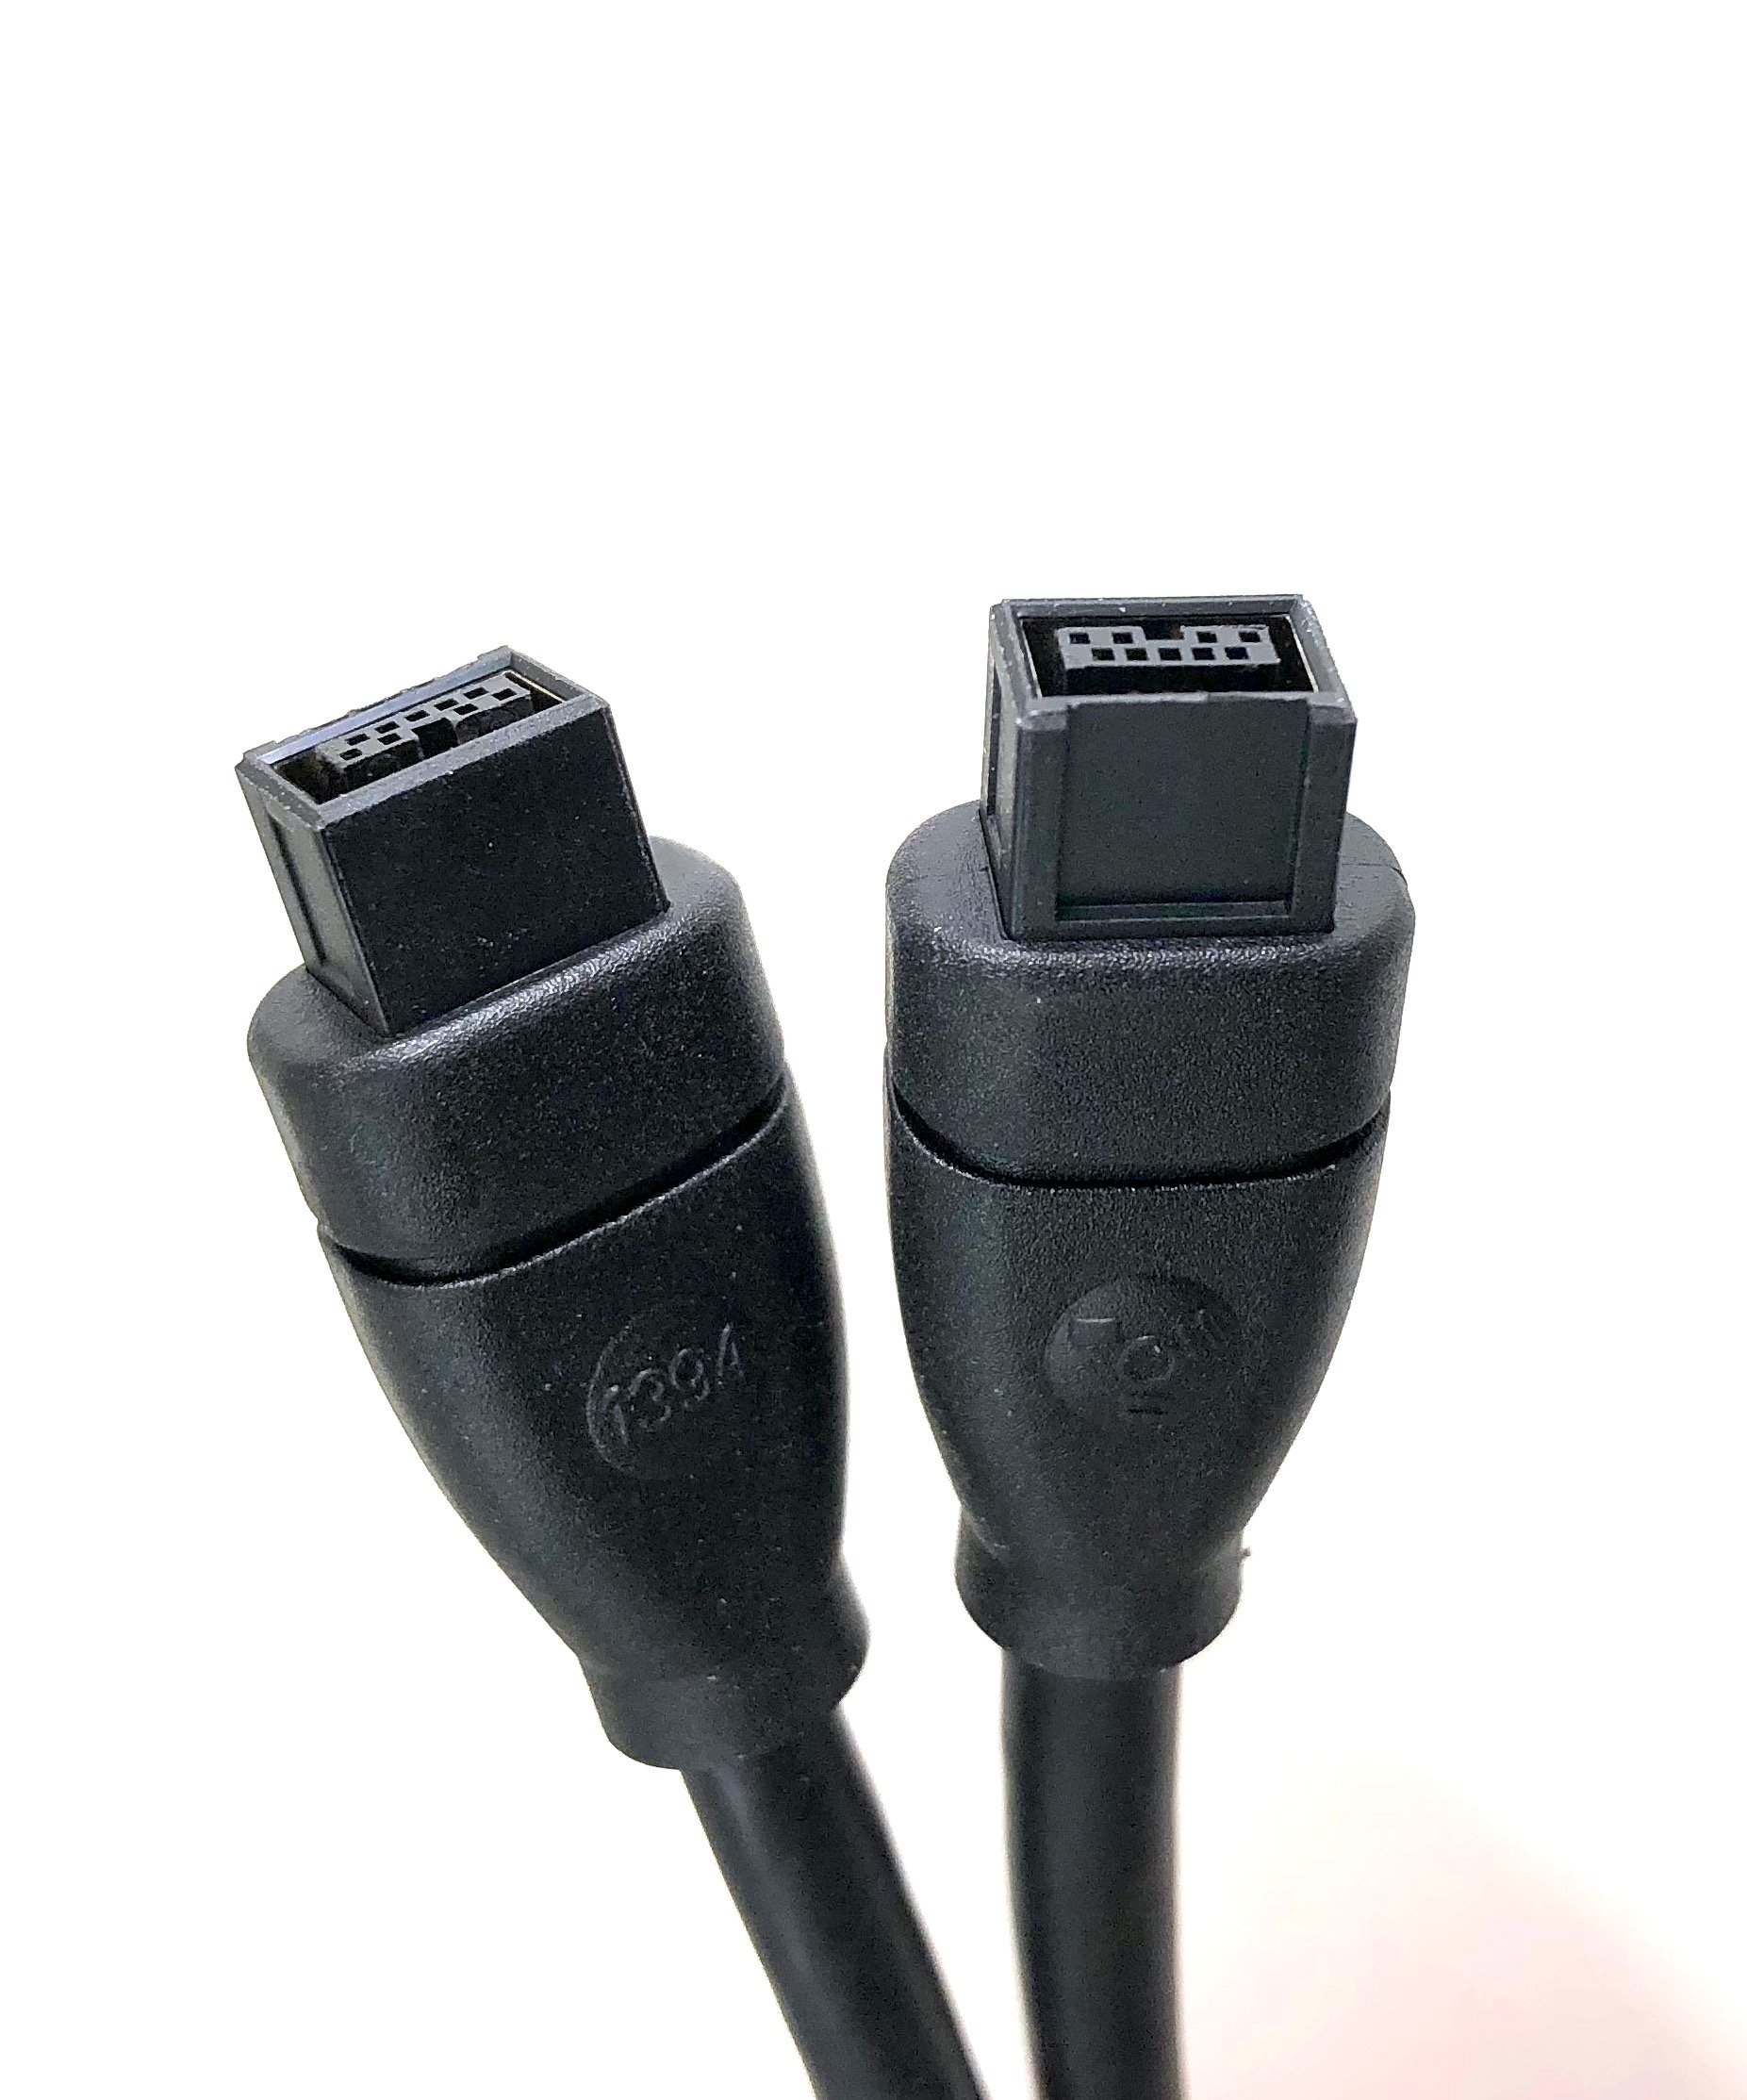 Micro Connectors, Inc. 10 feet Firewire IEEE 1394 9 Pin to 9 Pin Cable (E07-236) by MICRO CONNECTORS